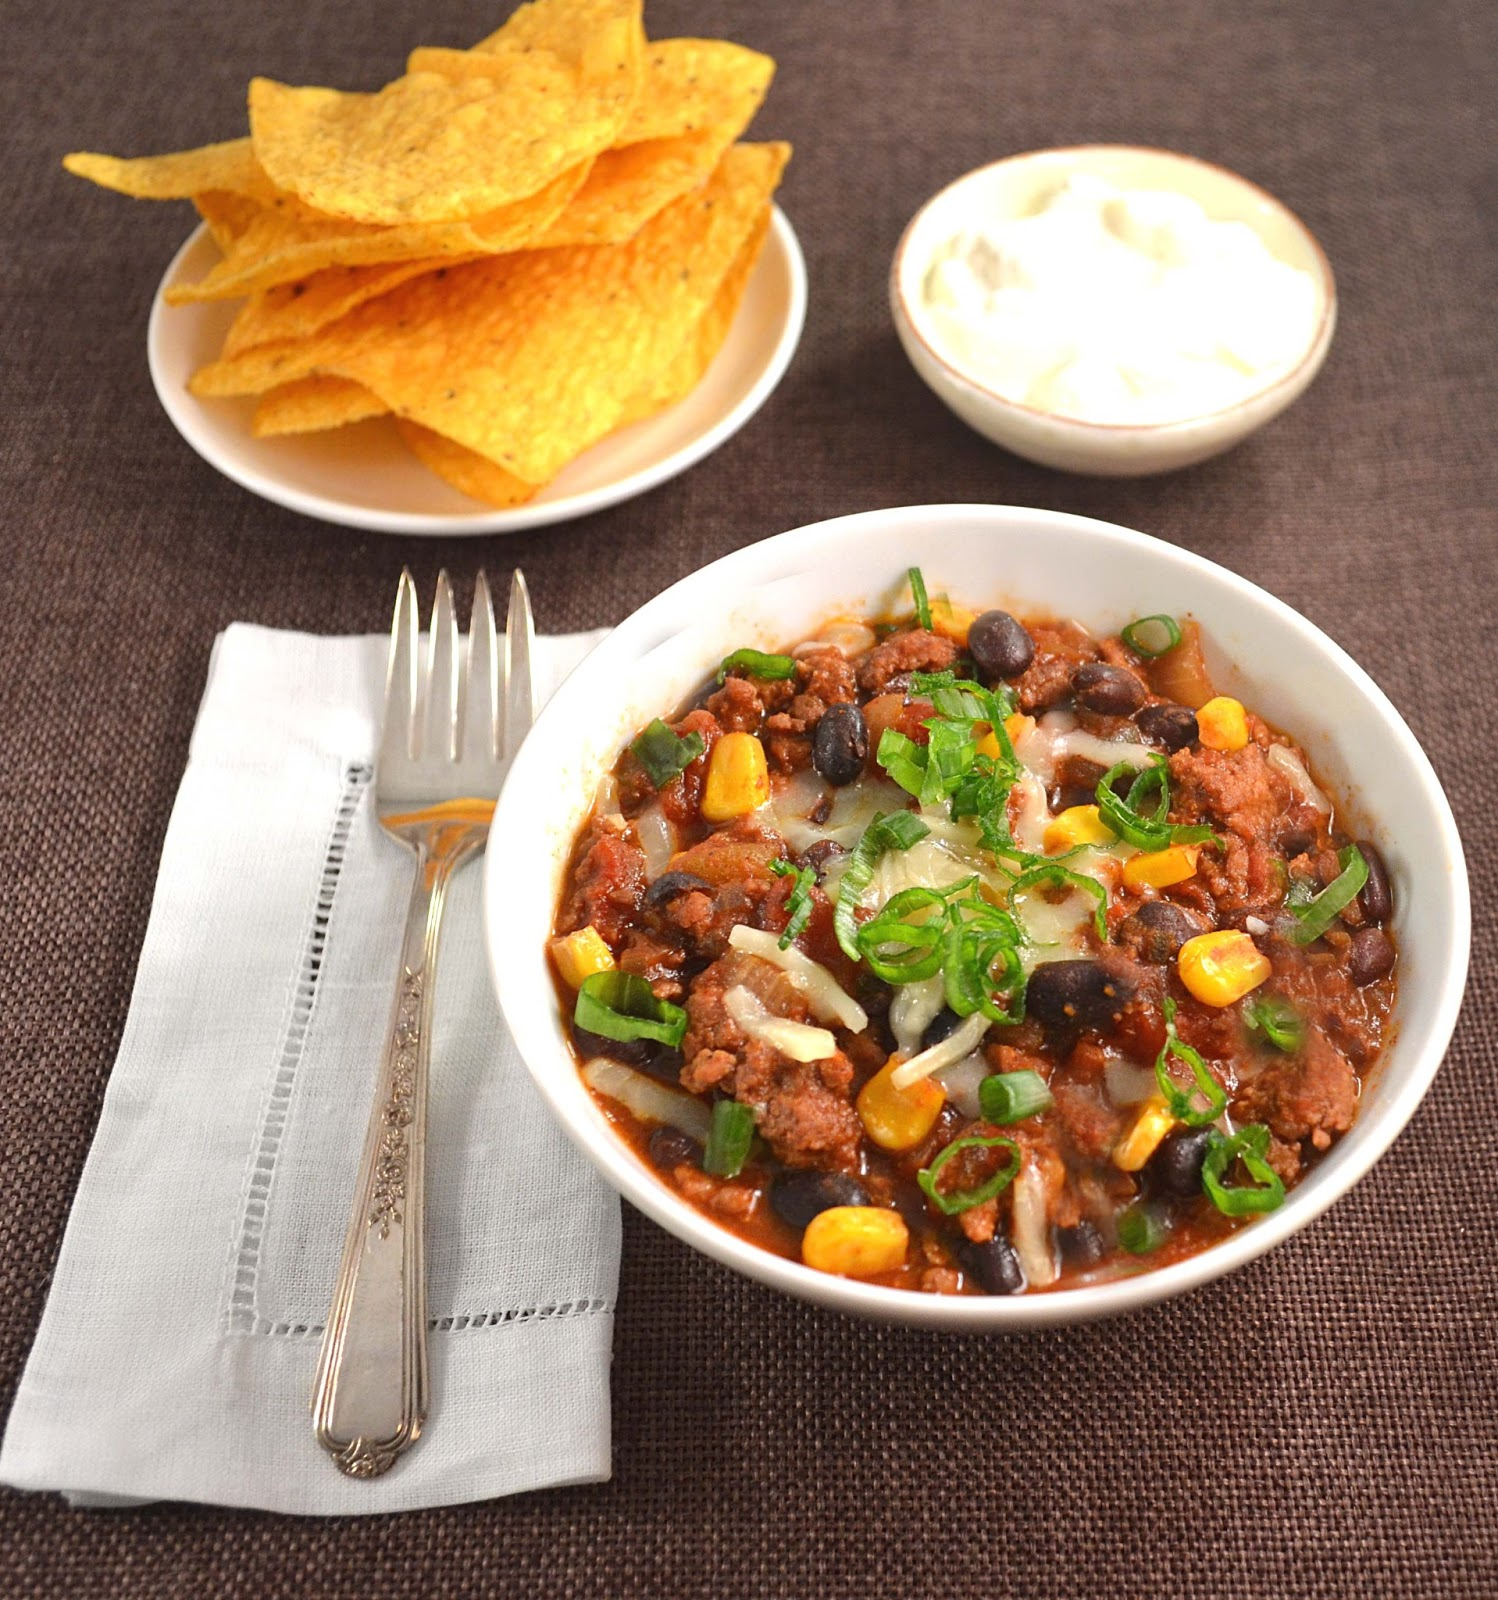 Jilly...Inspired : Thick & Hearty Diner-Style Chili